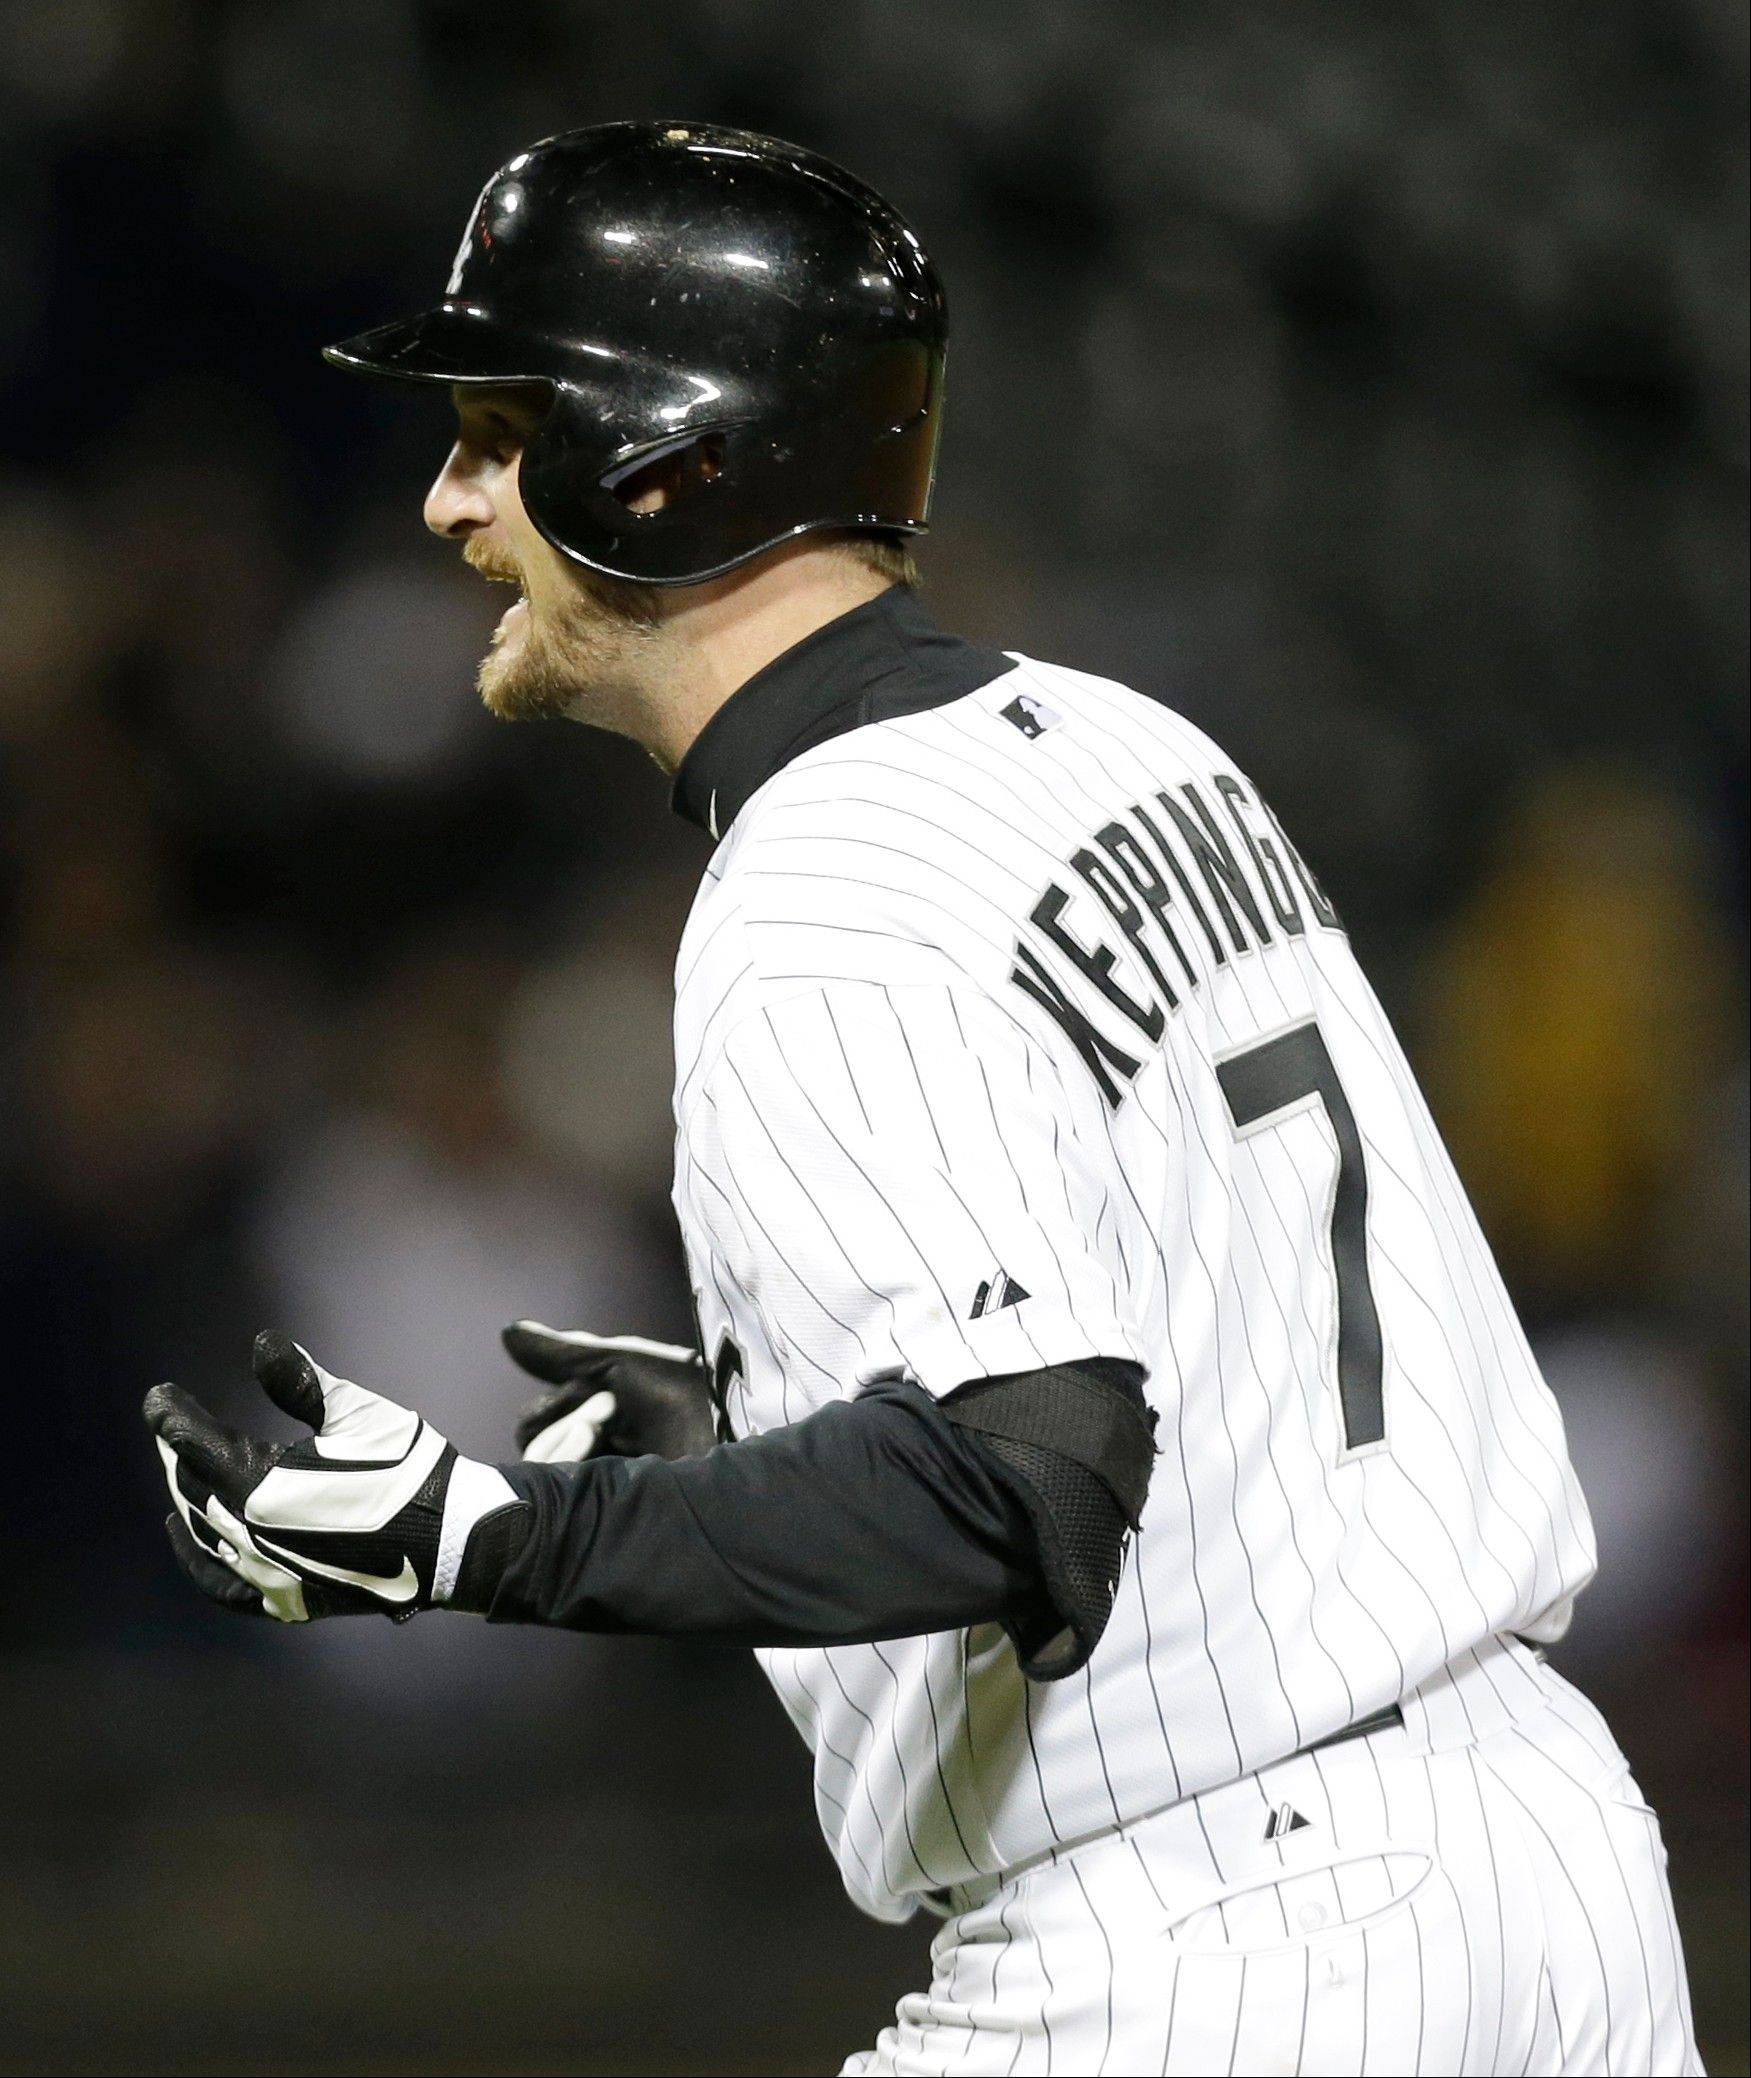 Jeff Keppinger has not been the answer at third base for the White Sox this season.